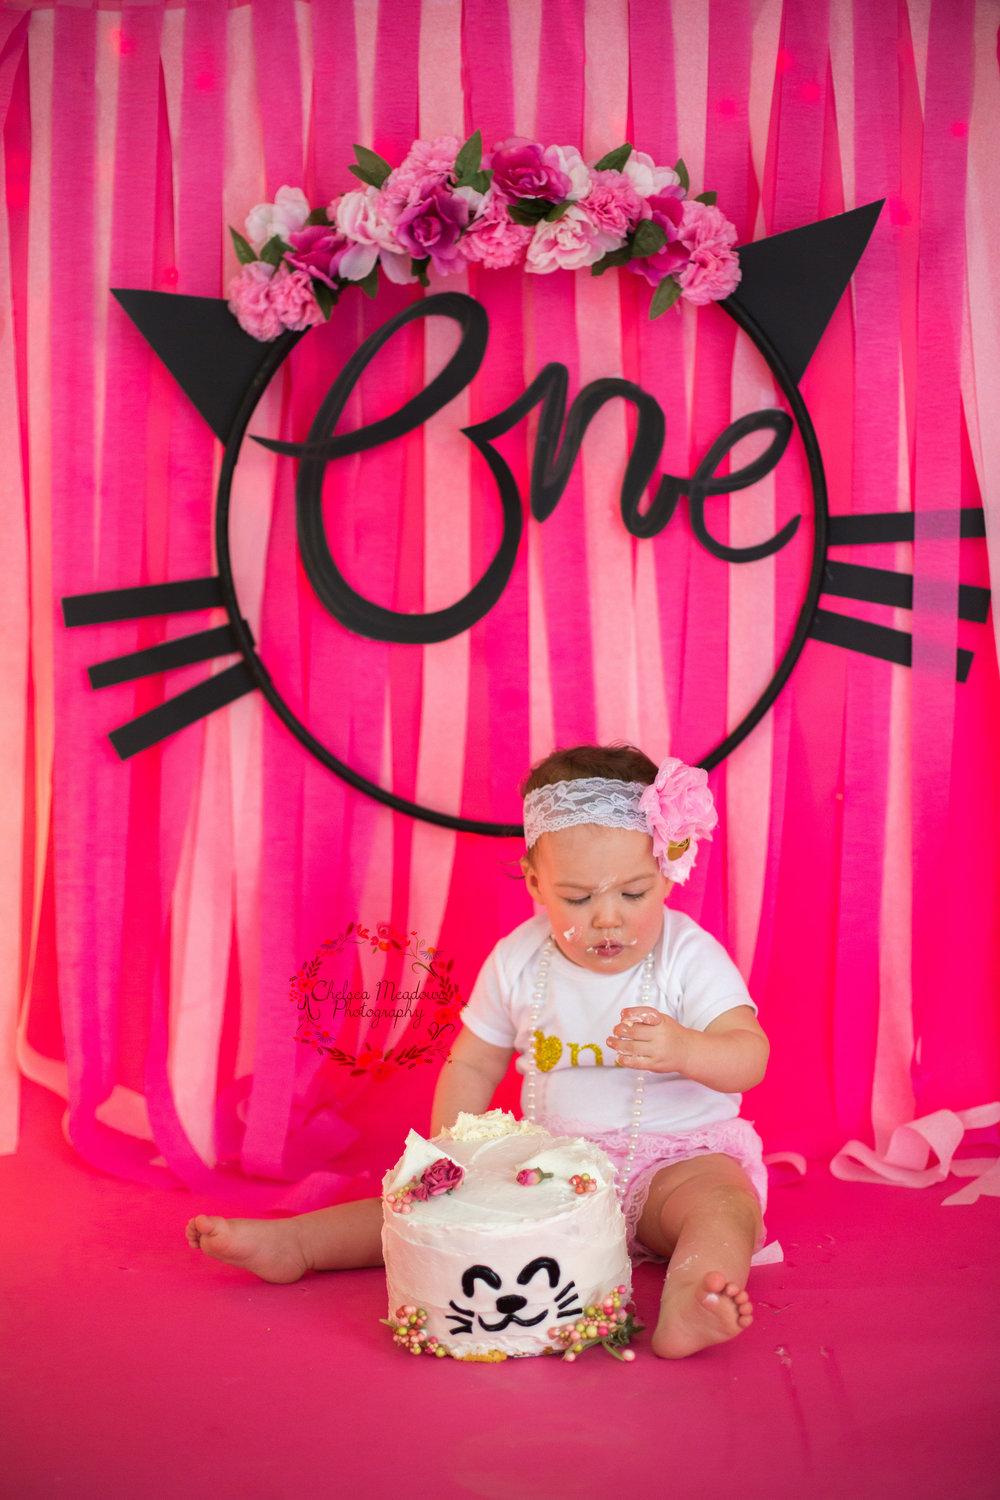 Phina First Birthday - Nashville Family Photographer - Chelsea Meadows Photography (93).jpg